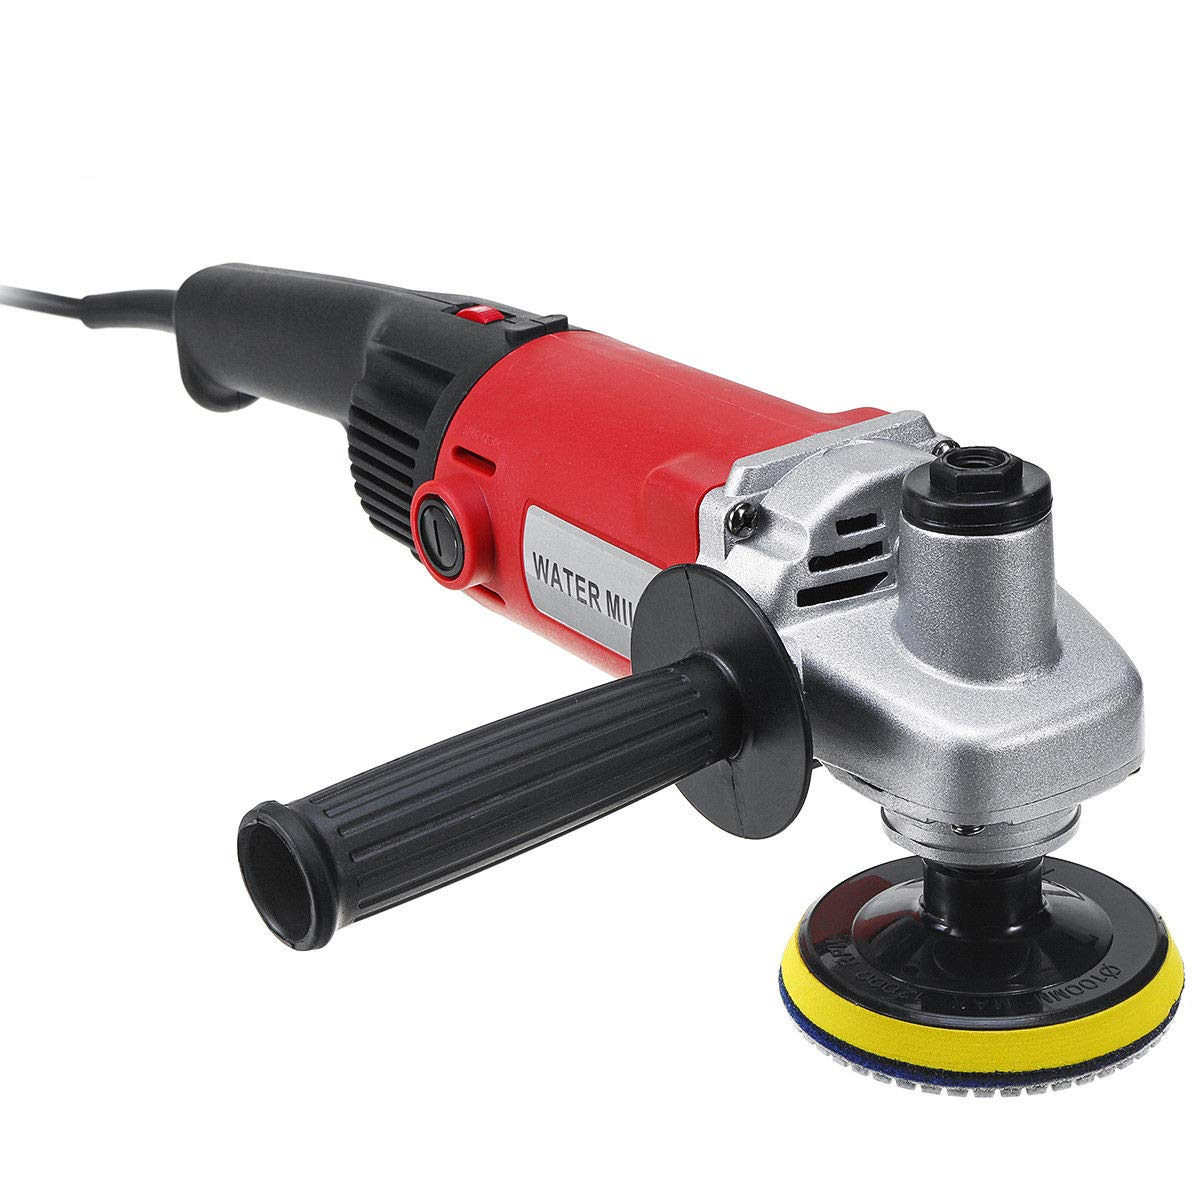 MOPHOTO 4-Inch Variable Speed Random Orbital Polisher Kit, Countertop Wet Sander Grinder w/Diamond Pads for Marble/Stone/Granite, USA Warehouse Shipment by MOPHOTO (Image #4)